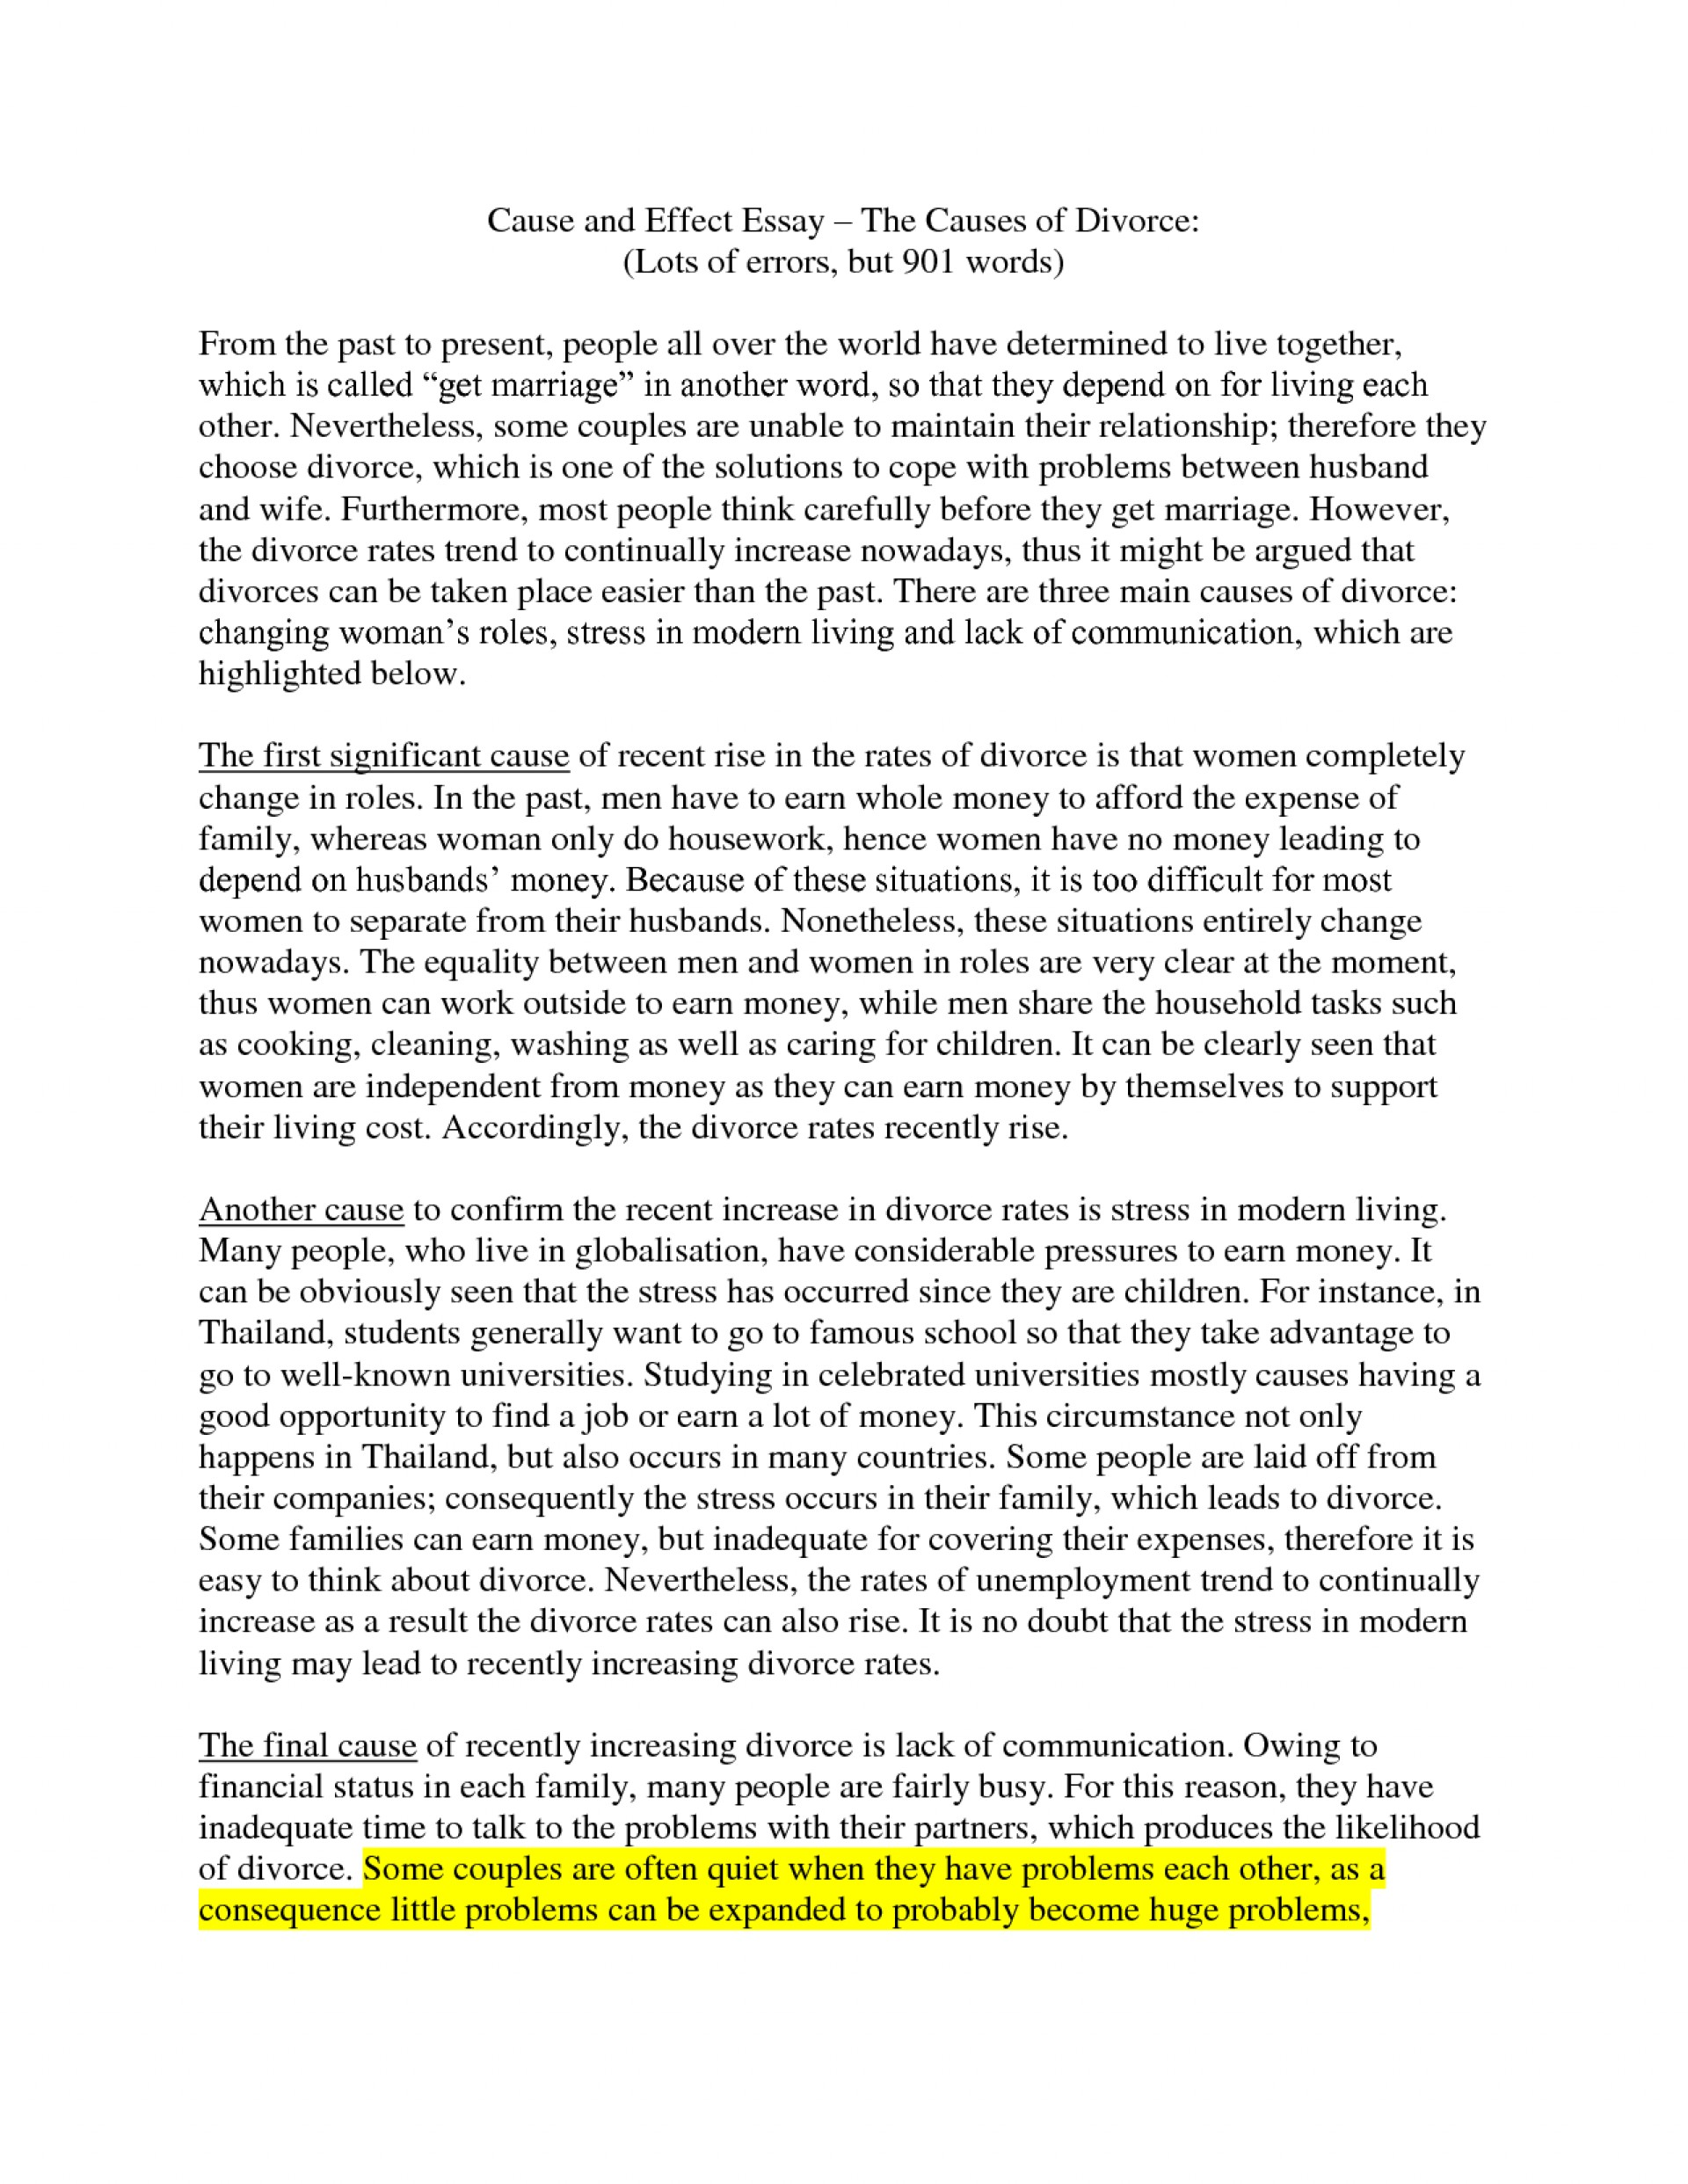 007 Essay Example How Do You Write Cause And Effect Writing Ppt V5kyg Examples Tips For Pdf Outline On Divorce Steps To Help With Powerpoint Surprising Expository Topics 1920